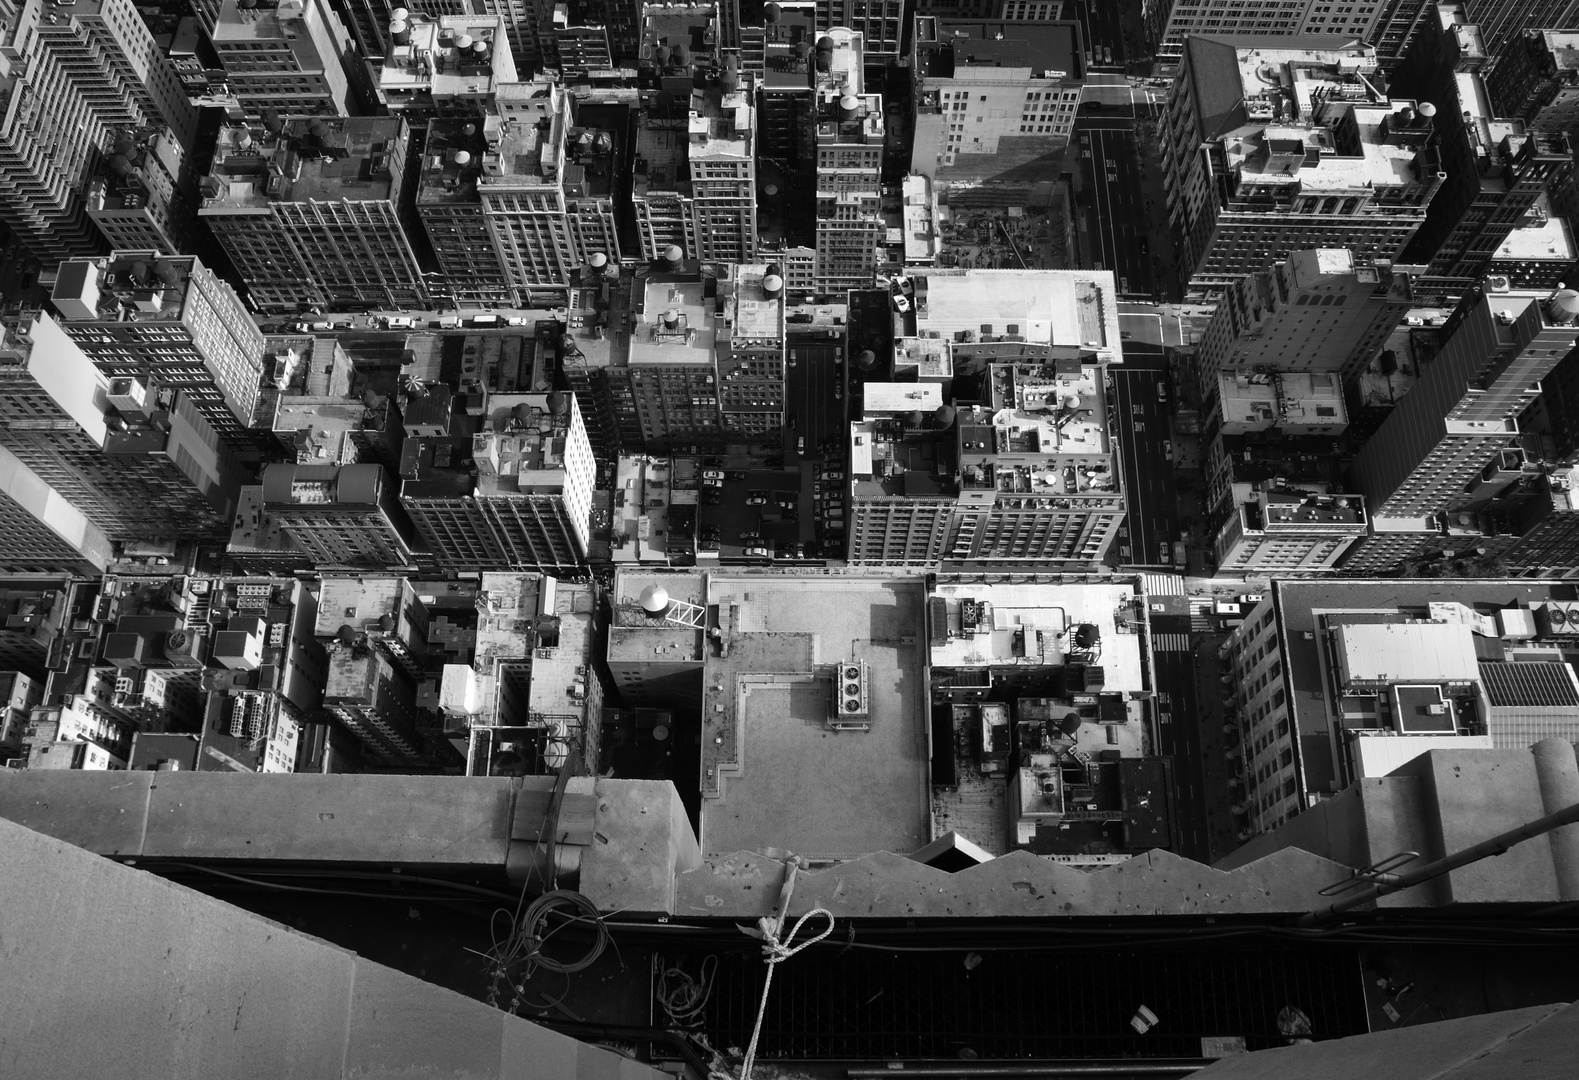 bird's eye view of NYC